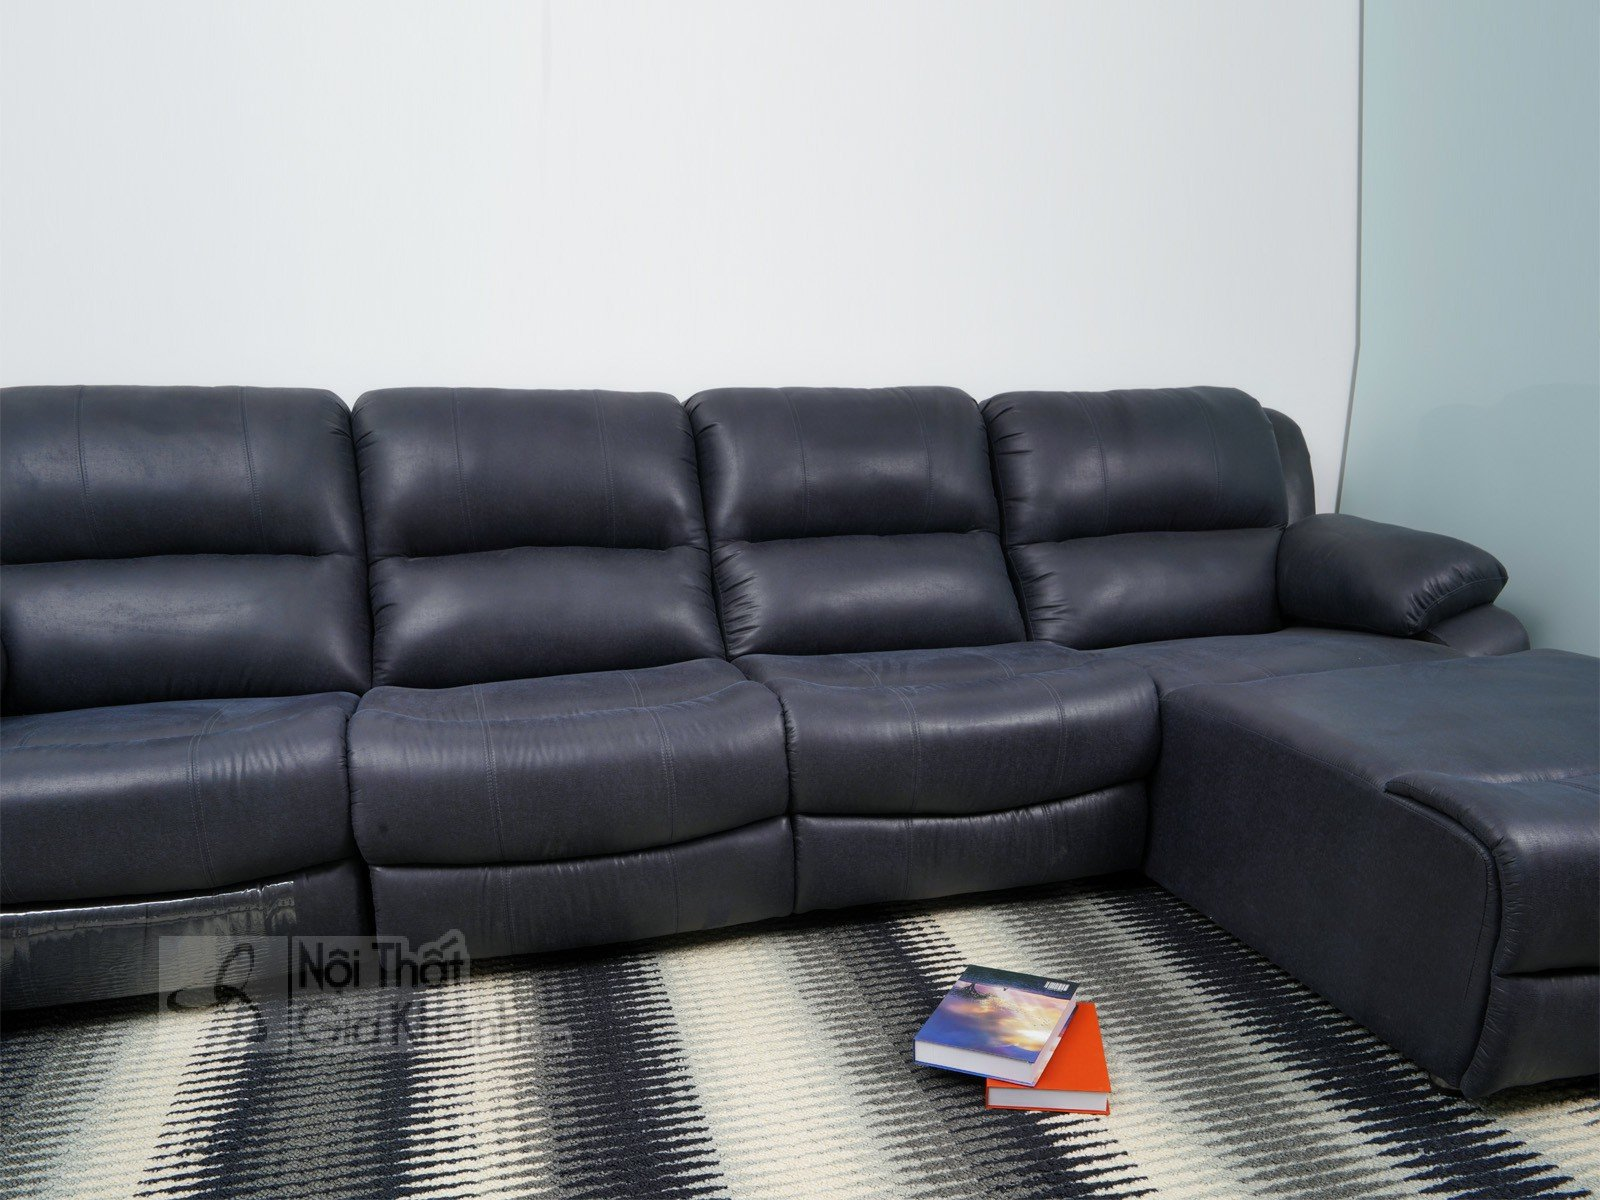 Sofa Hien Dai Mr843Sf 3200X1800X1000 2